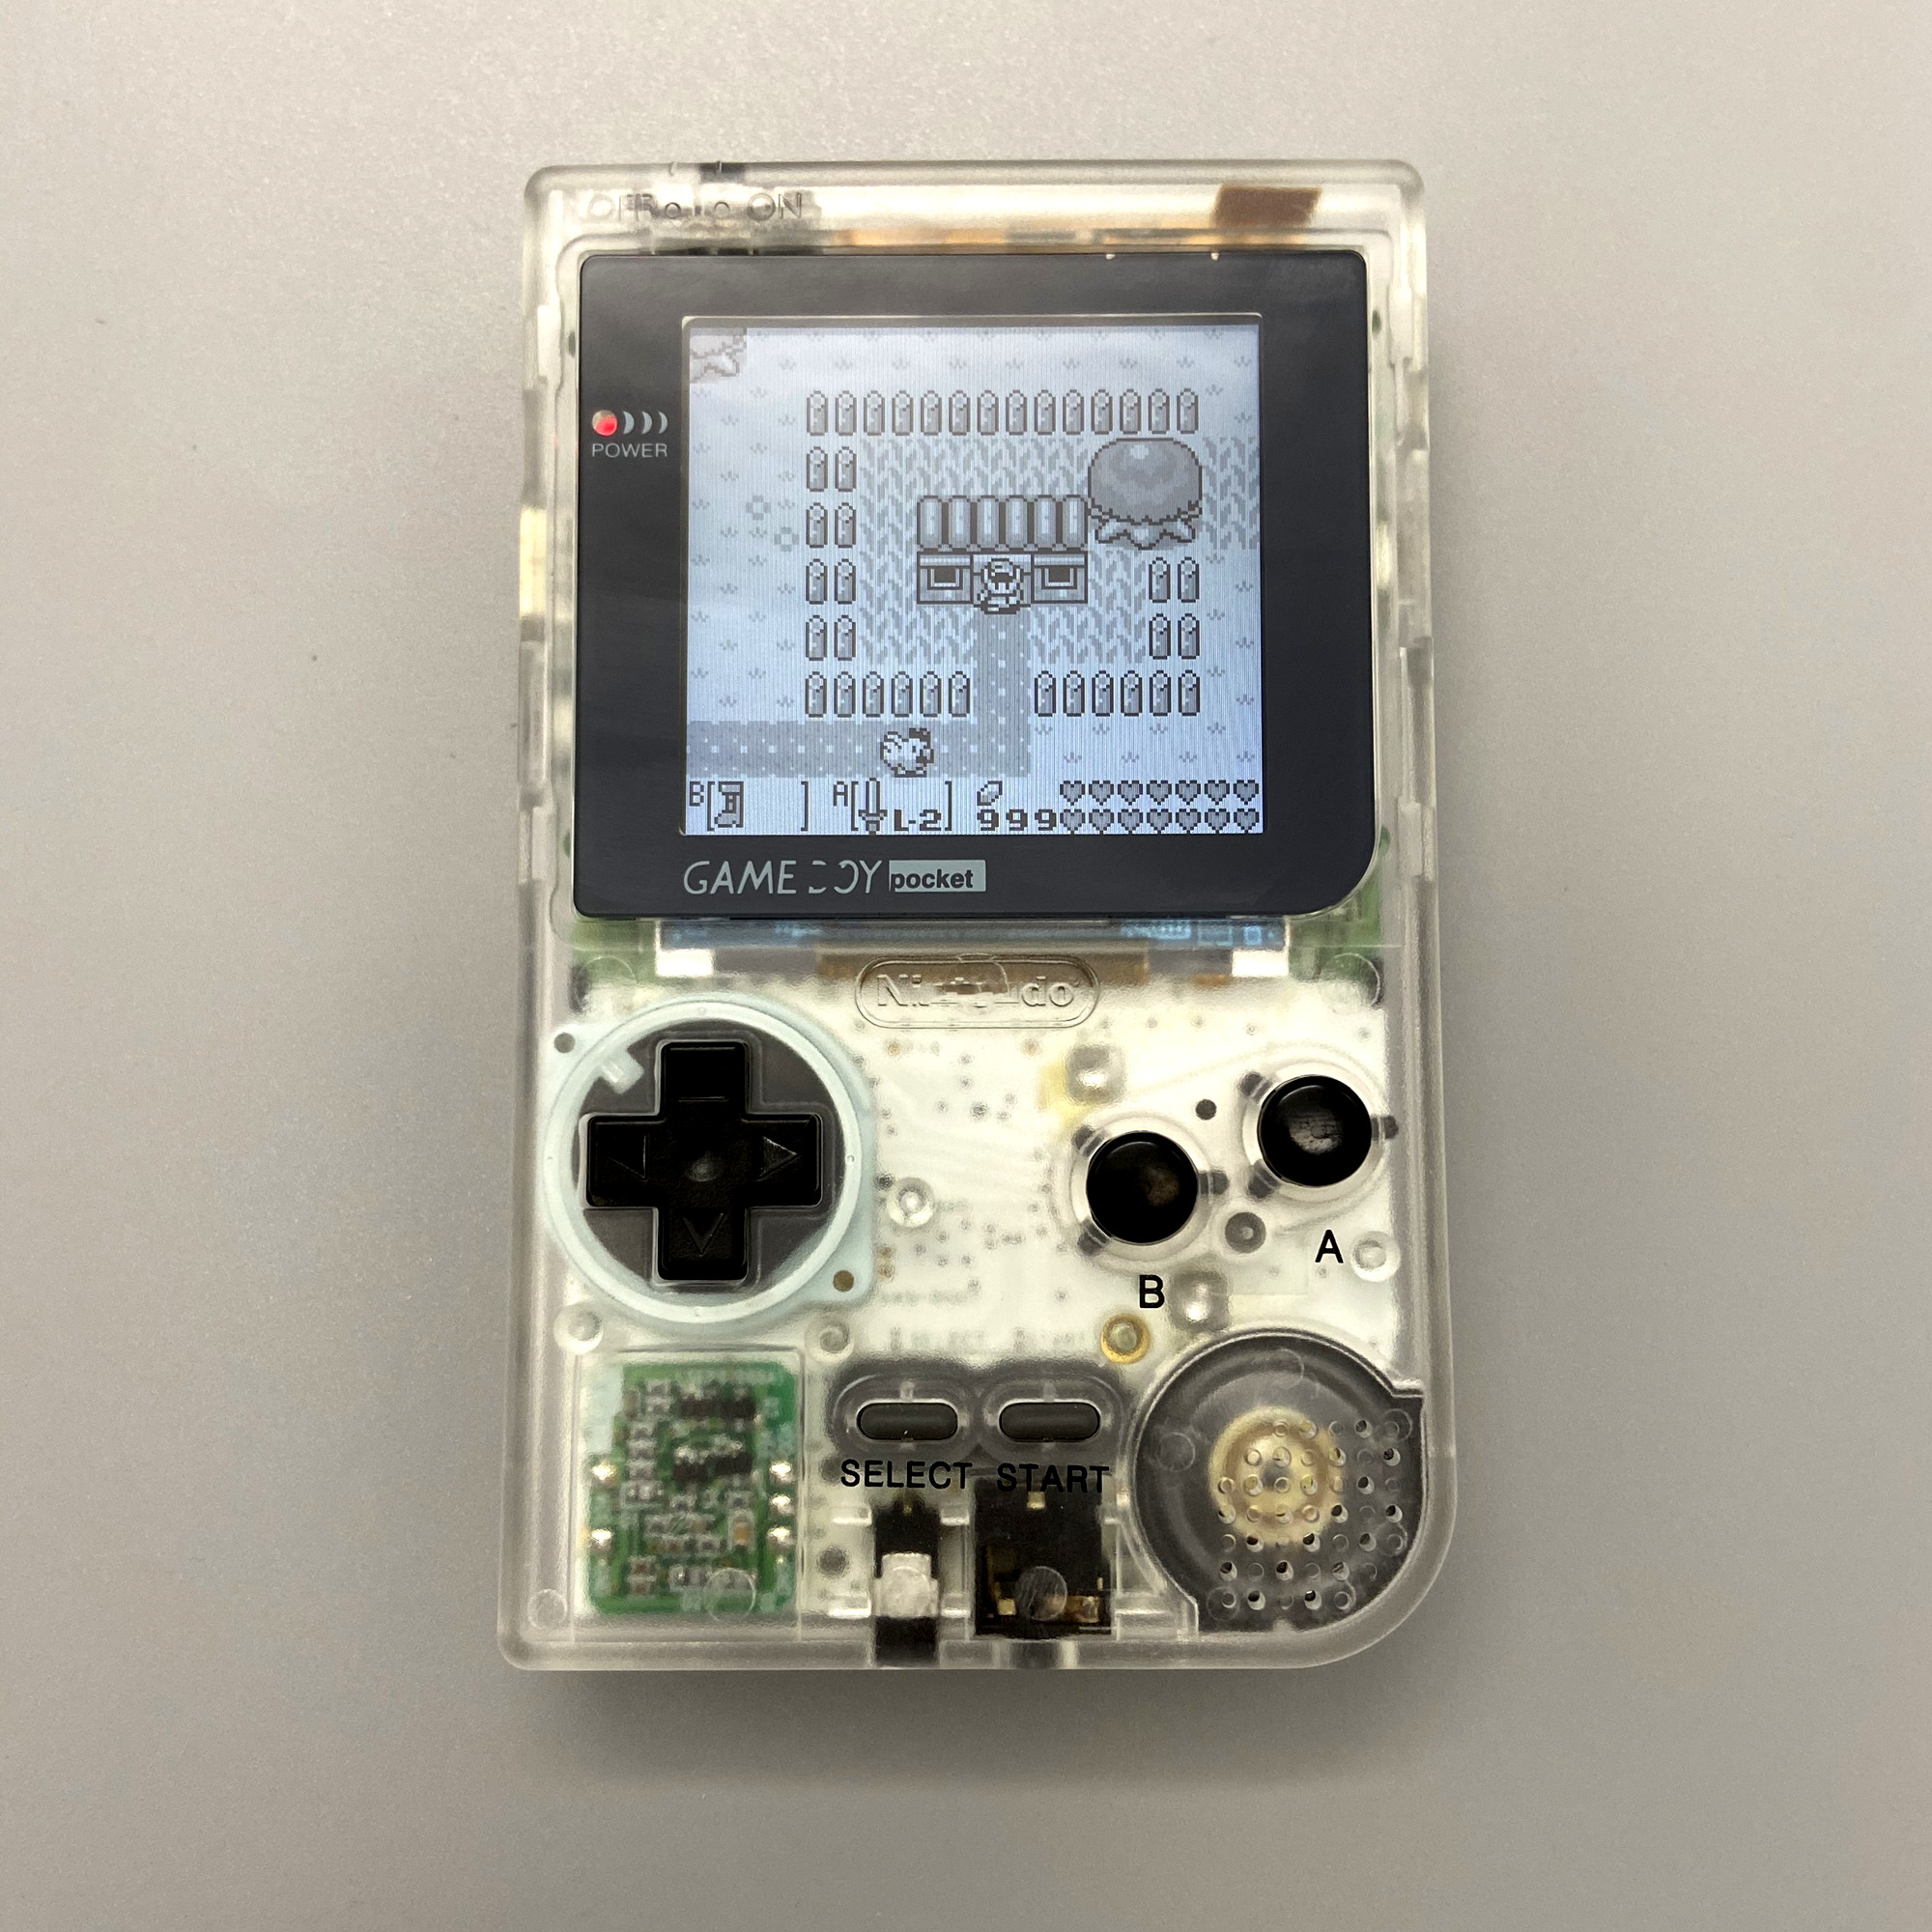 GBP with new shell and 2 6 inches high brightness LCD Professionally Refurbished For Game Boy Pocket